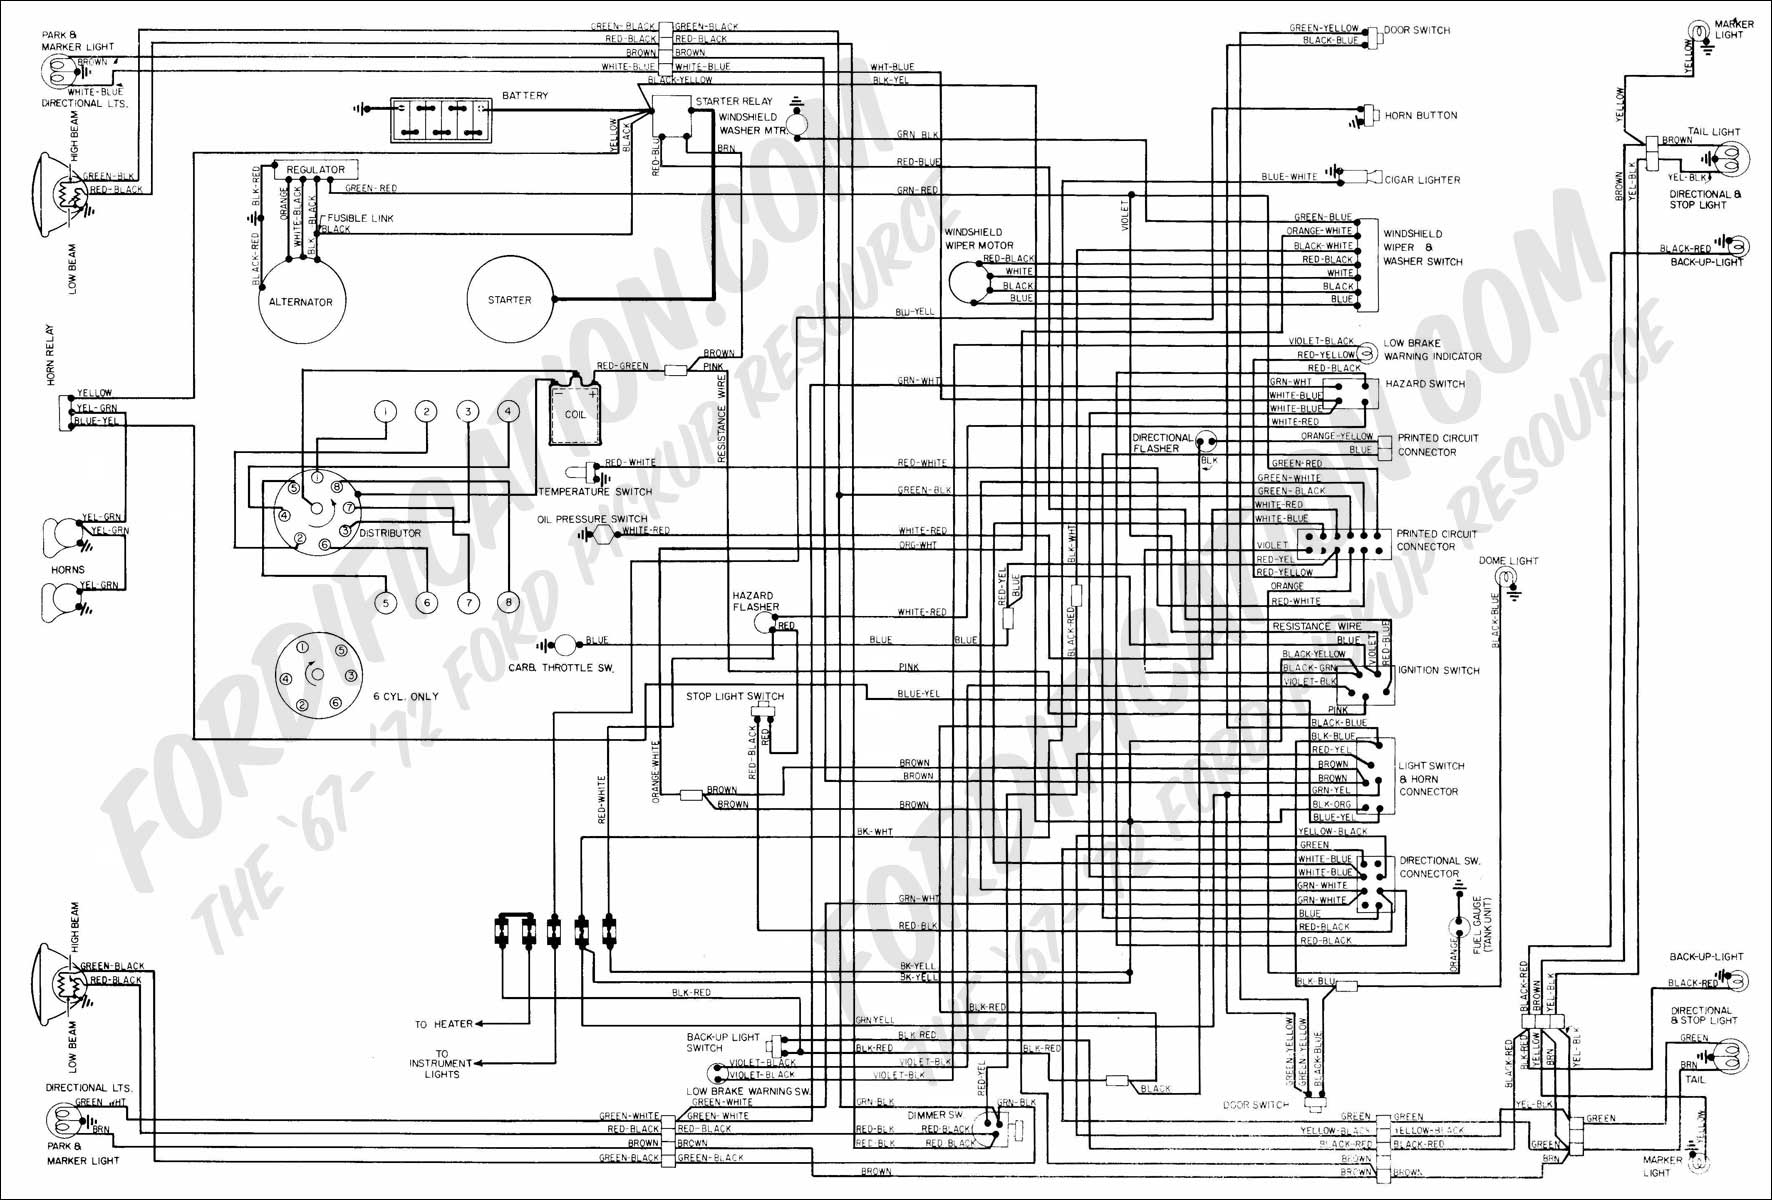 1970 ignition switch diagram ford truck enthusiasts forums 1994 Ford F-150 Radio Wiring Diagram